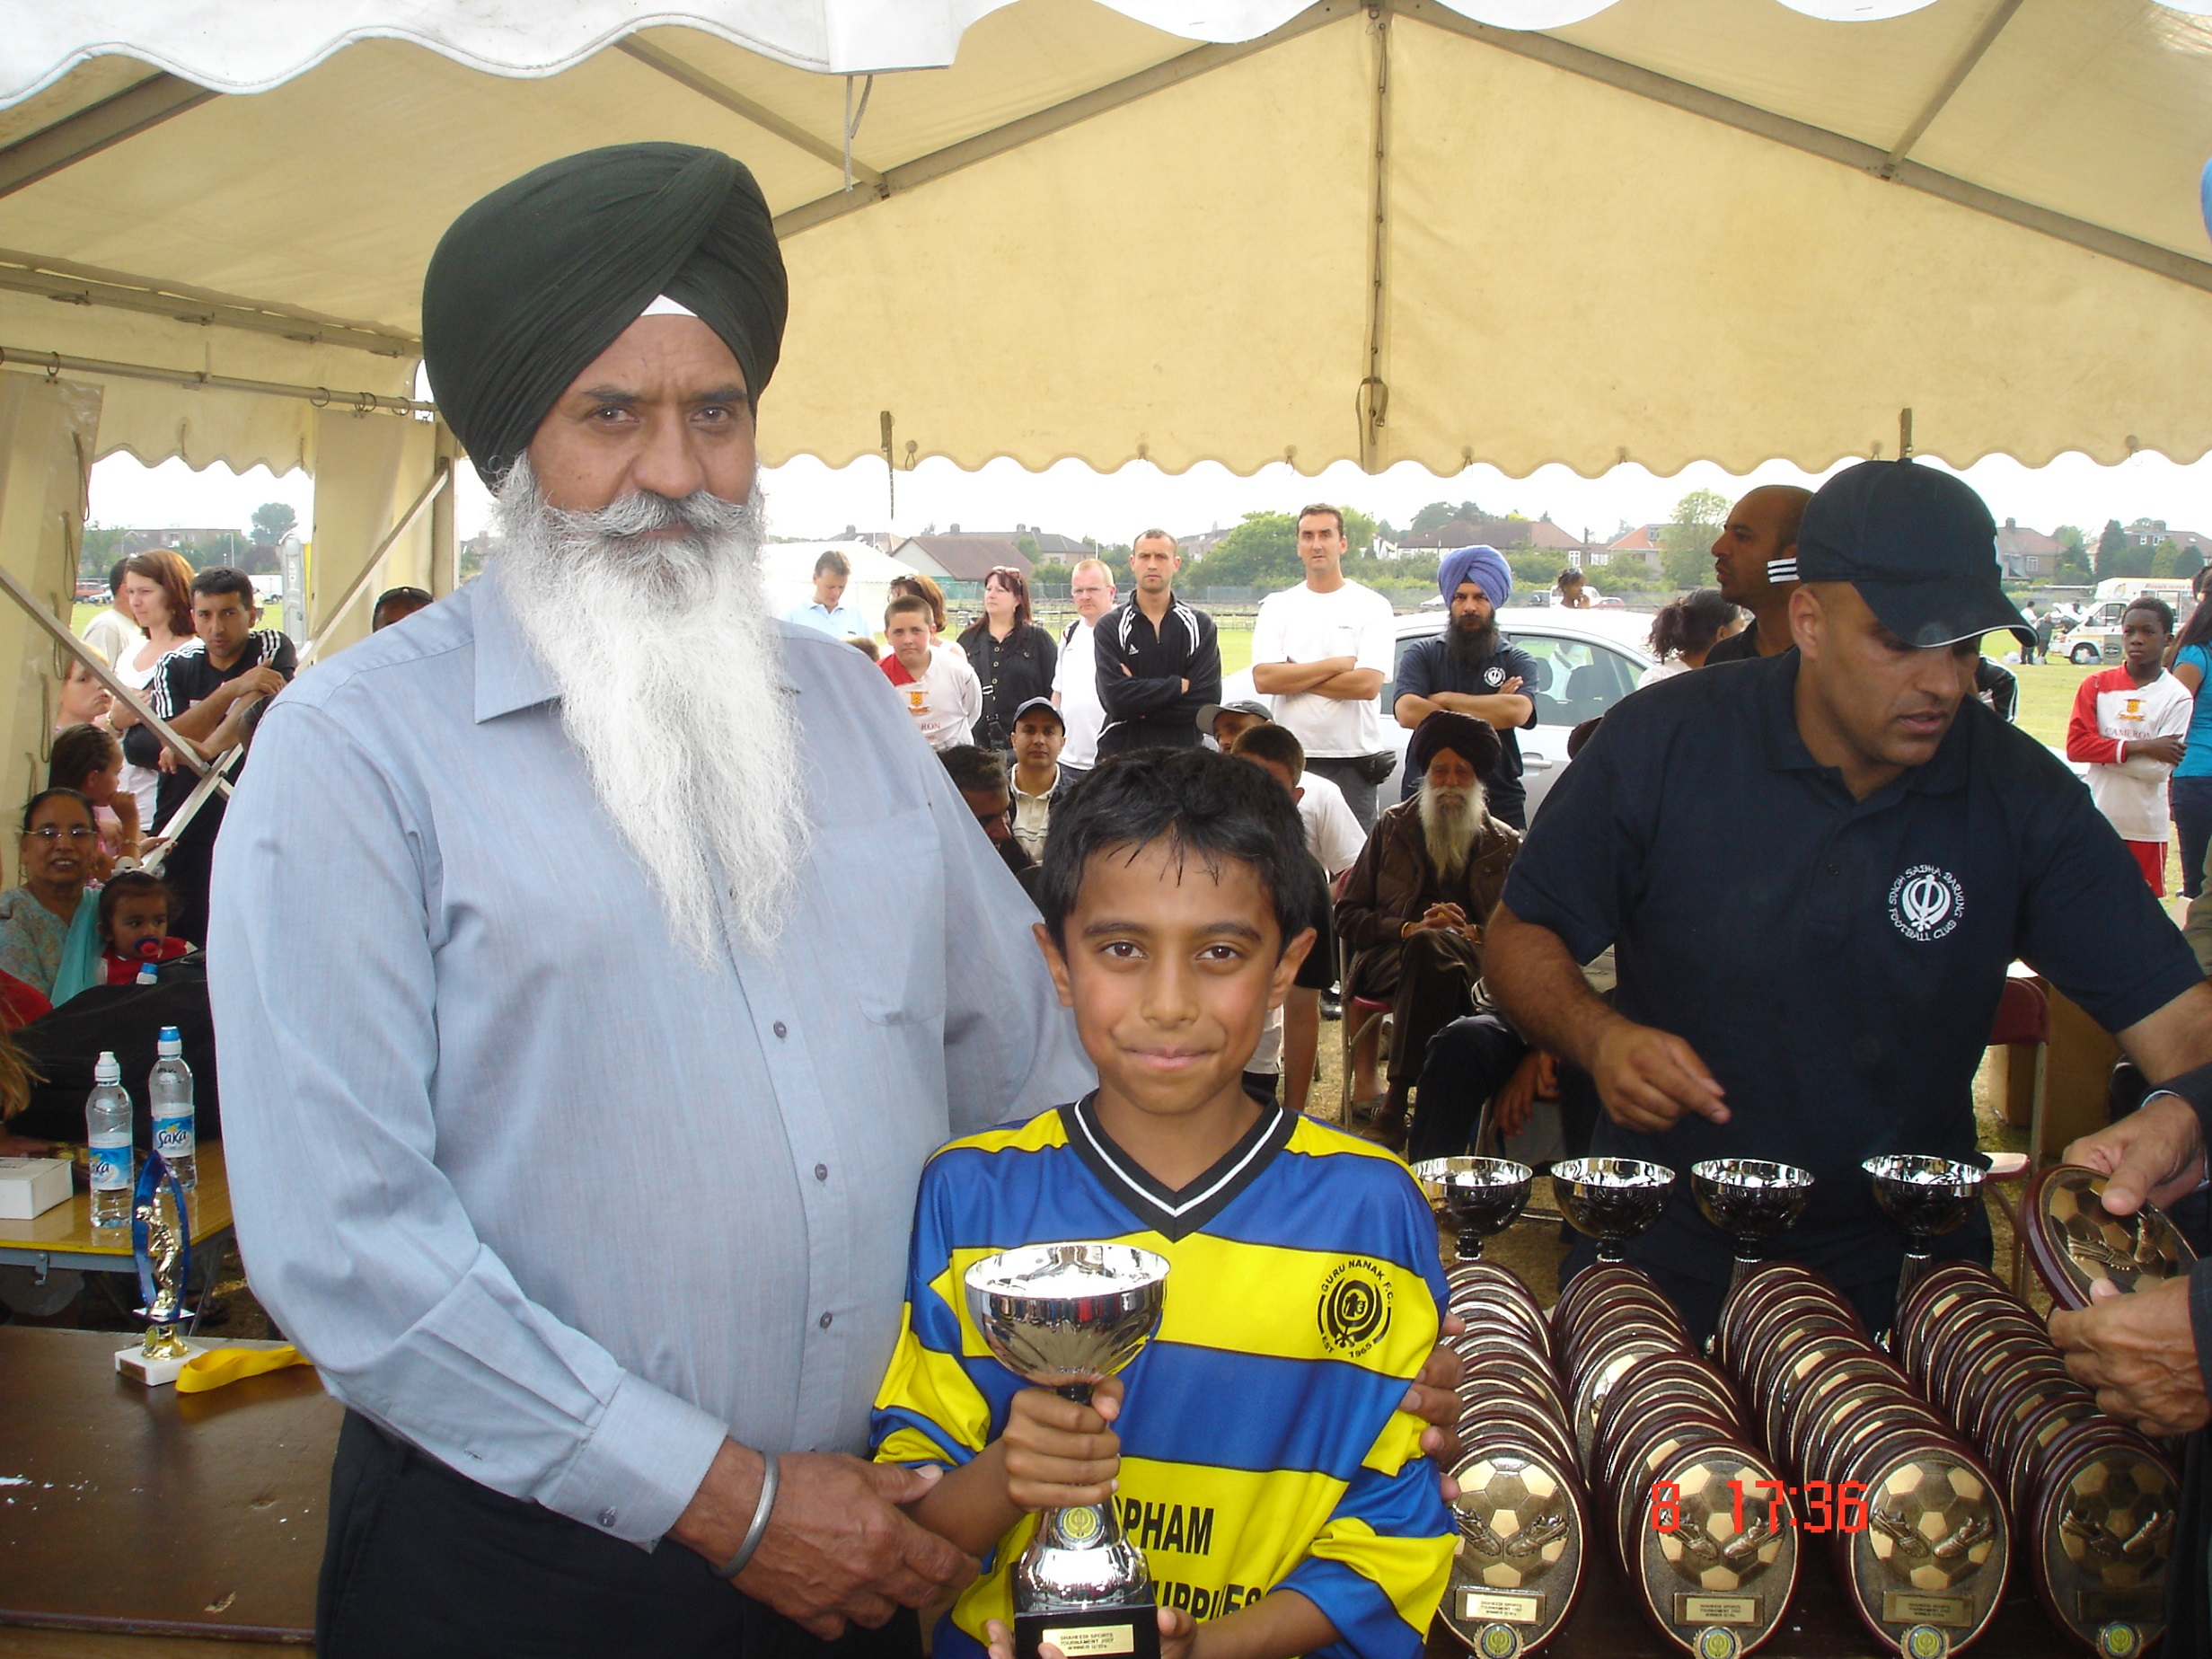 Arun Suman with U10s Barking 2007 winners trophy